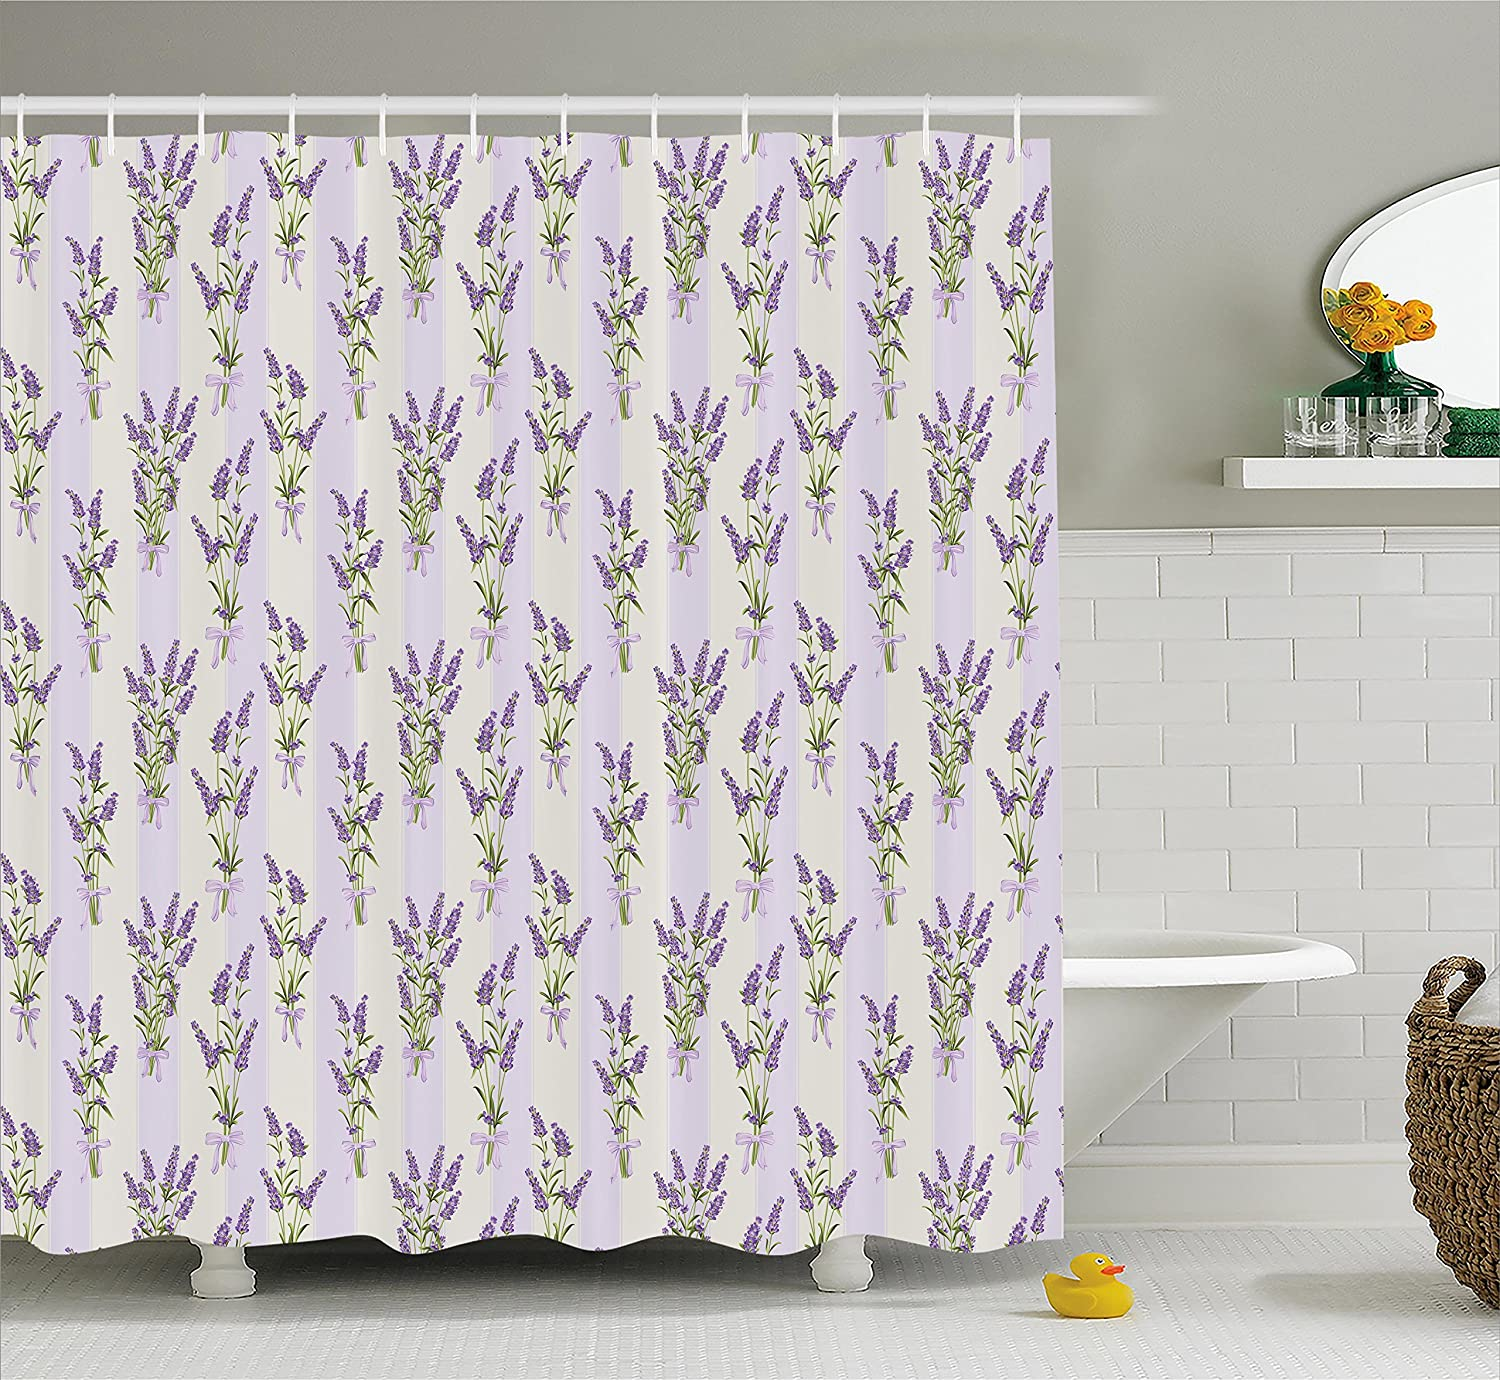 Ambesonne Lavender Shower Curtain Set Stripes And Flowers With Ribbons Romantic Country Home Decorations Spring Season Design Fabric Bathroom Decor